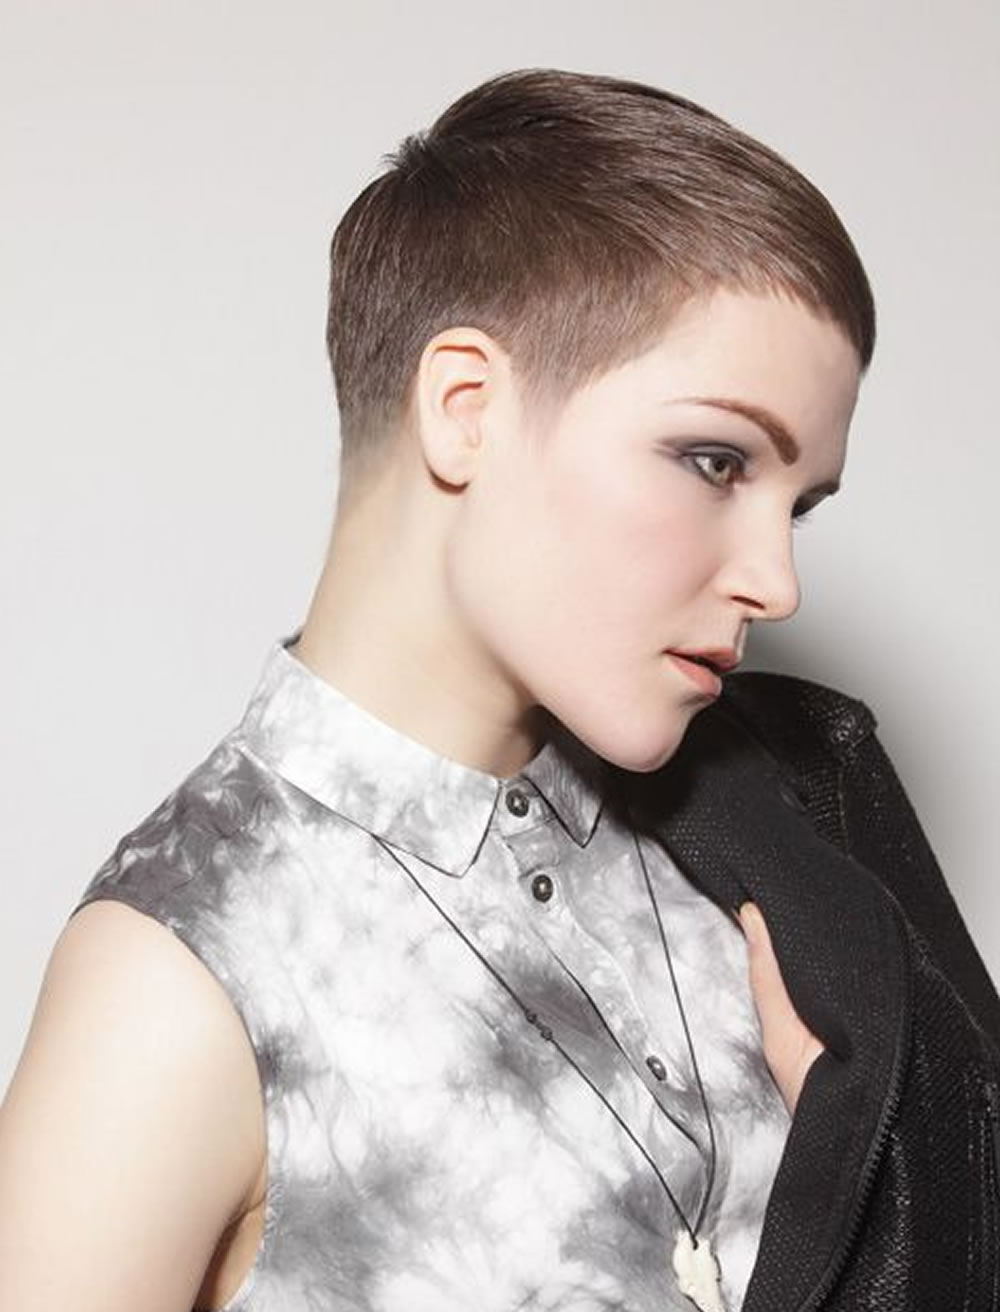 Cool Ultra Very Short Pixie Hairstyles For Thick Hair – Hairstyles Inside Very Short Haircuts For Women With Thick Hair (View 14 of 25)